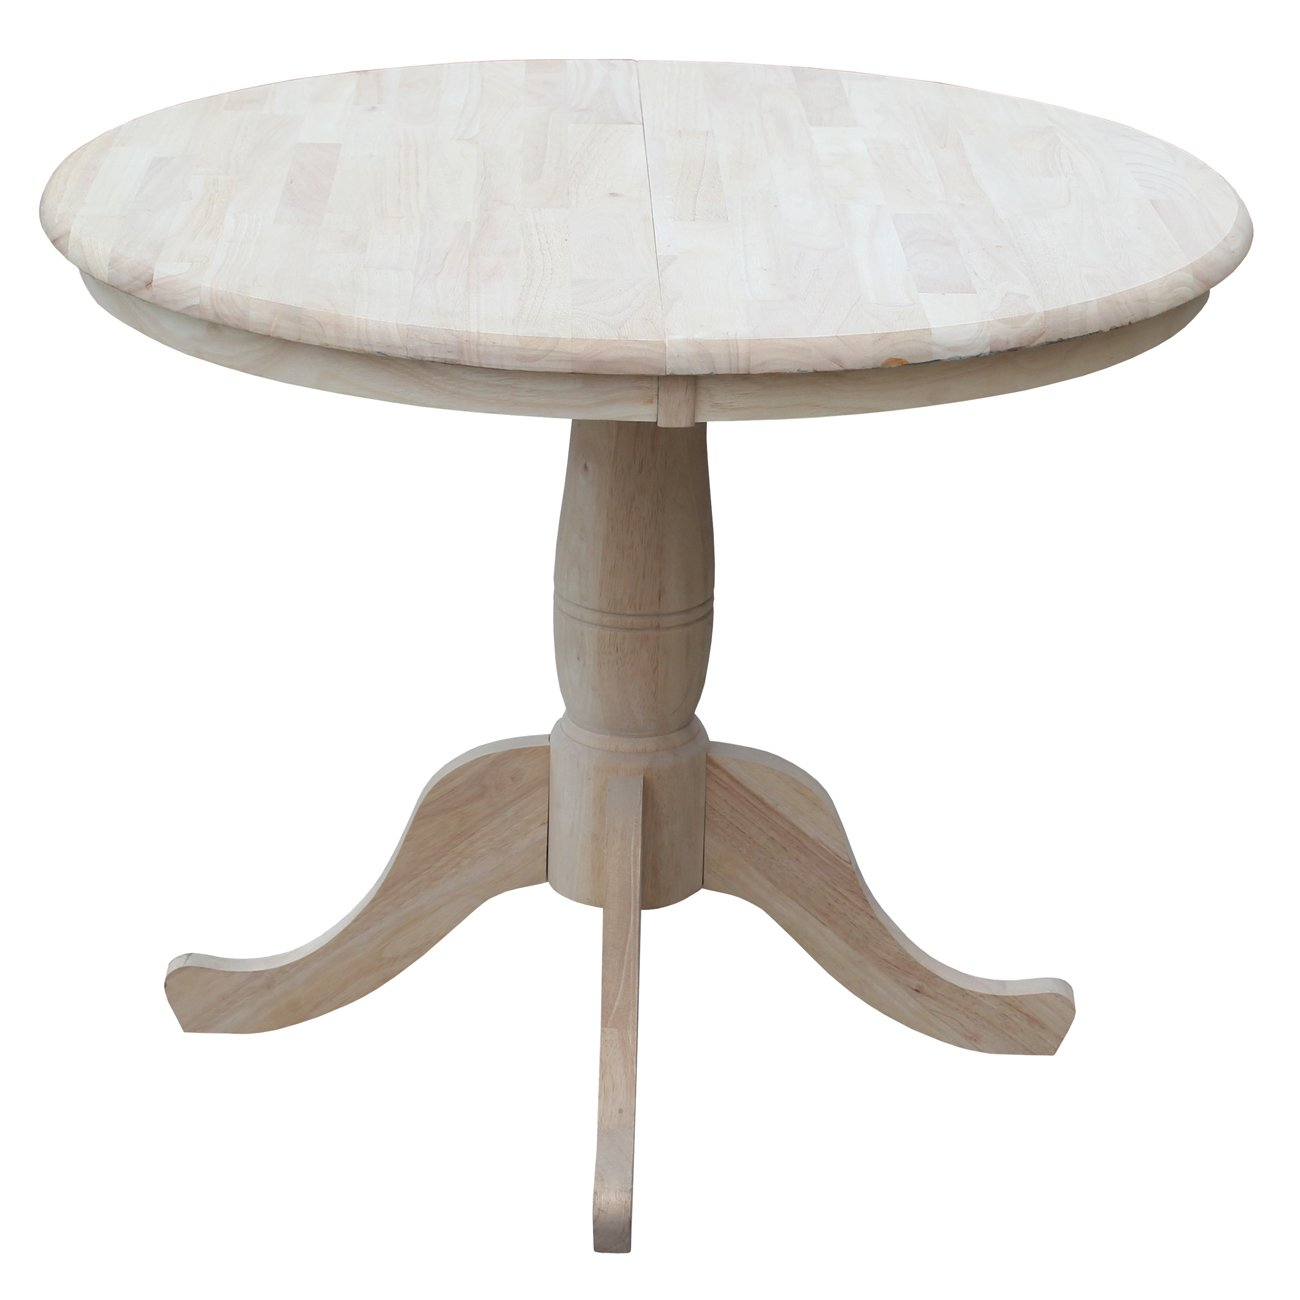 Stylish Lark Manoru0026trade; Overbay Round Pedestal 30 Extendable Dining Table round pedestal dining table